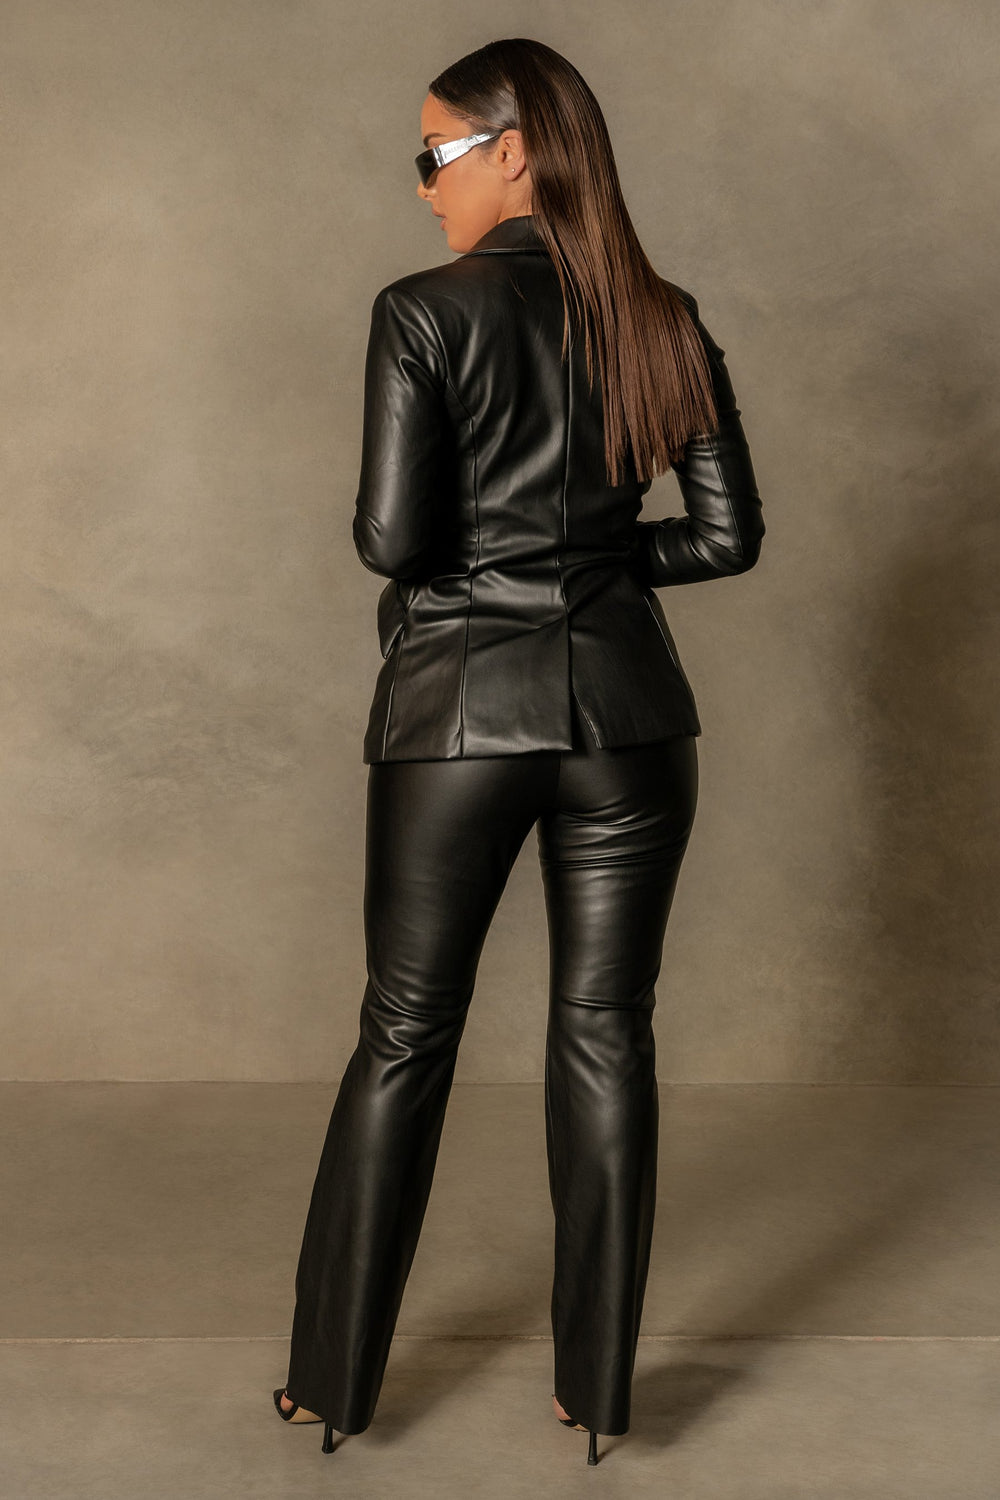 Tyra WIde Leg Faux Leather Pants - Black - MESHKI ?id=16109953089611